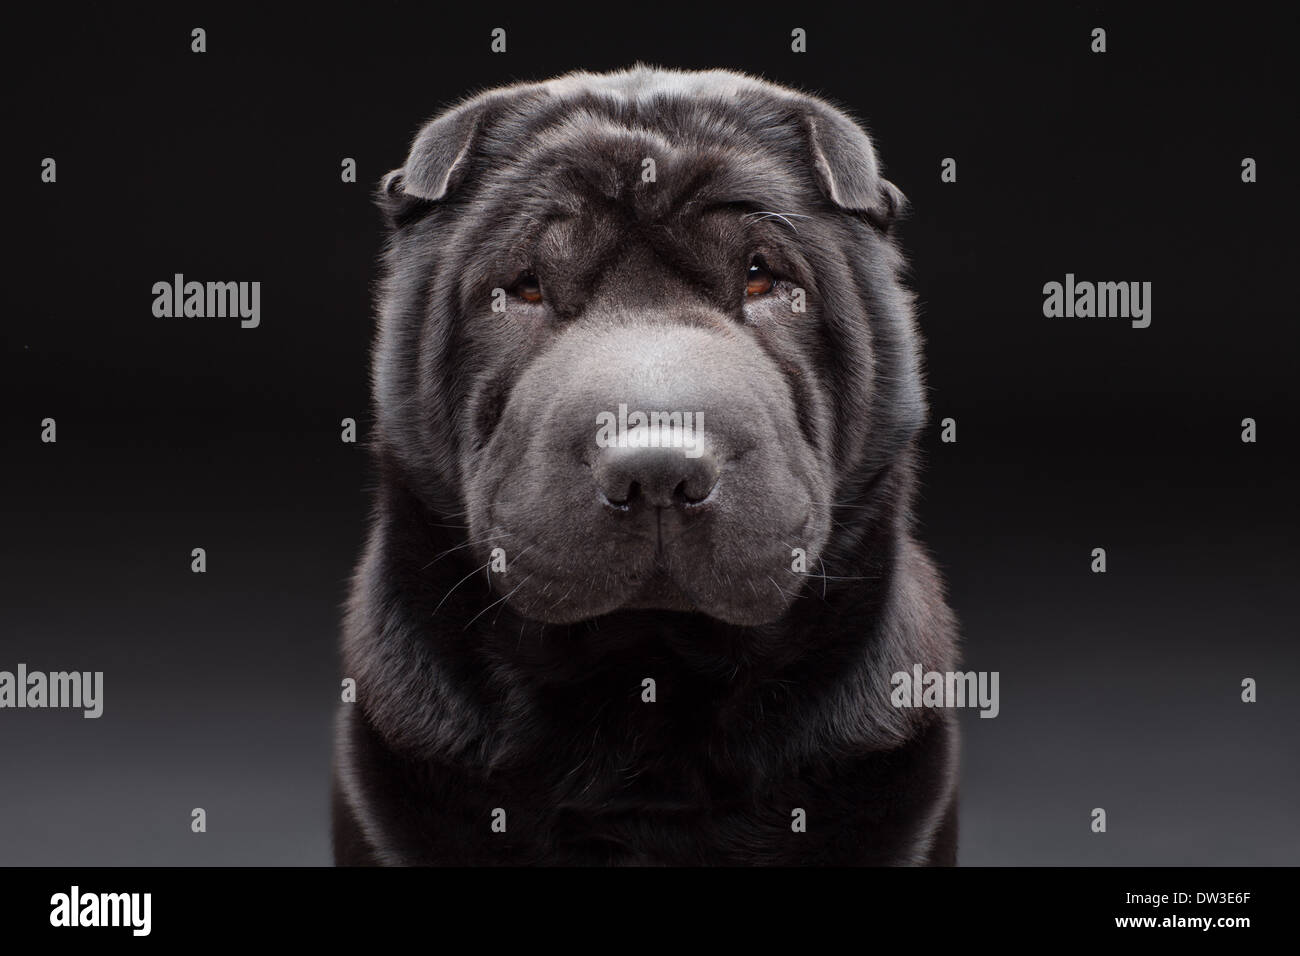 Black adult shar pei over black and grey background - Stock Image